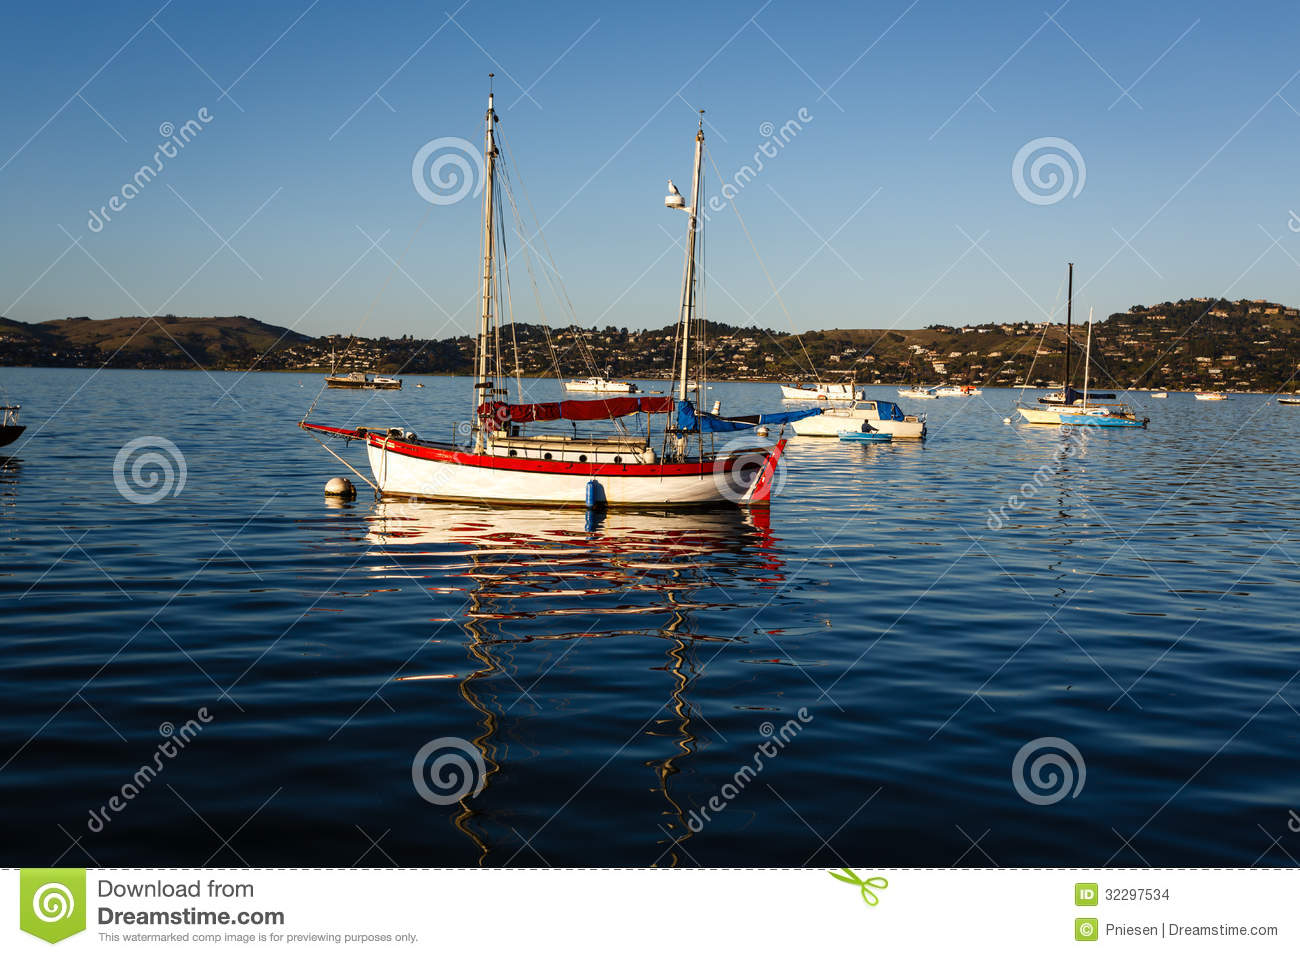 Colorful Wooden Sail Boat Stock Images - Image: 32297534